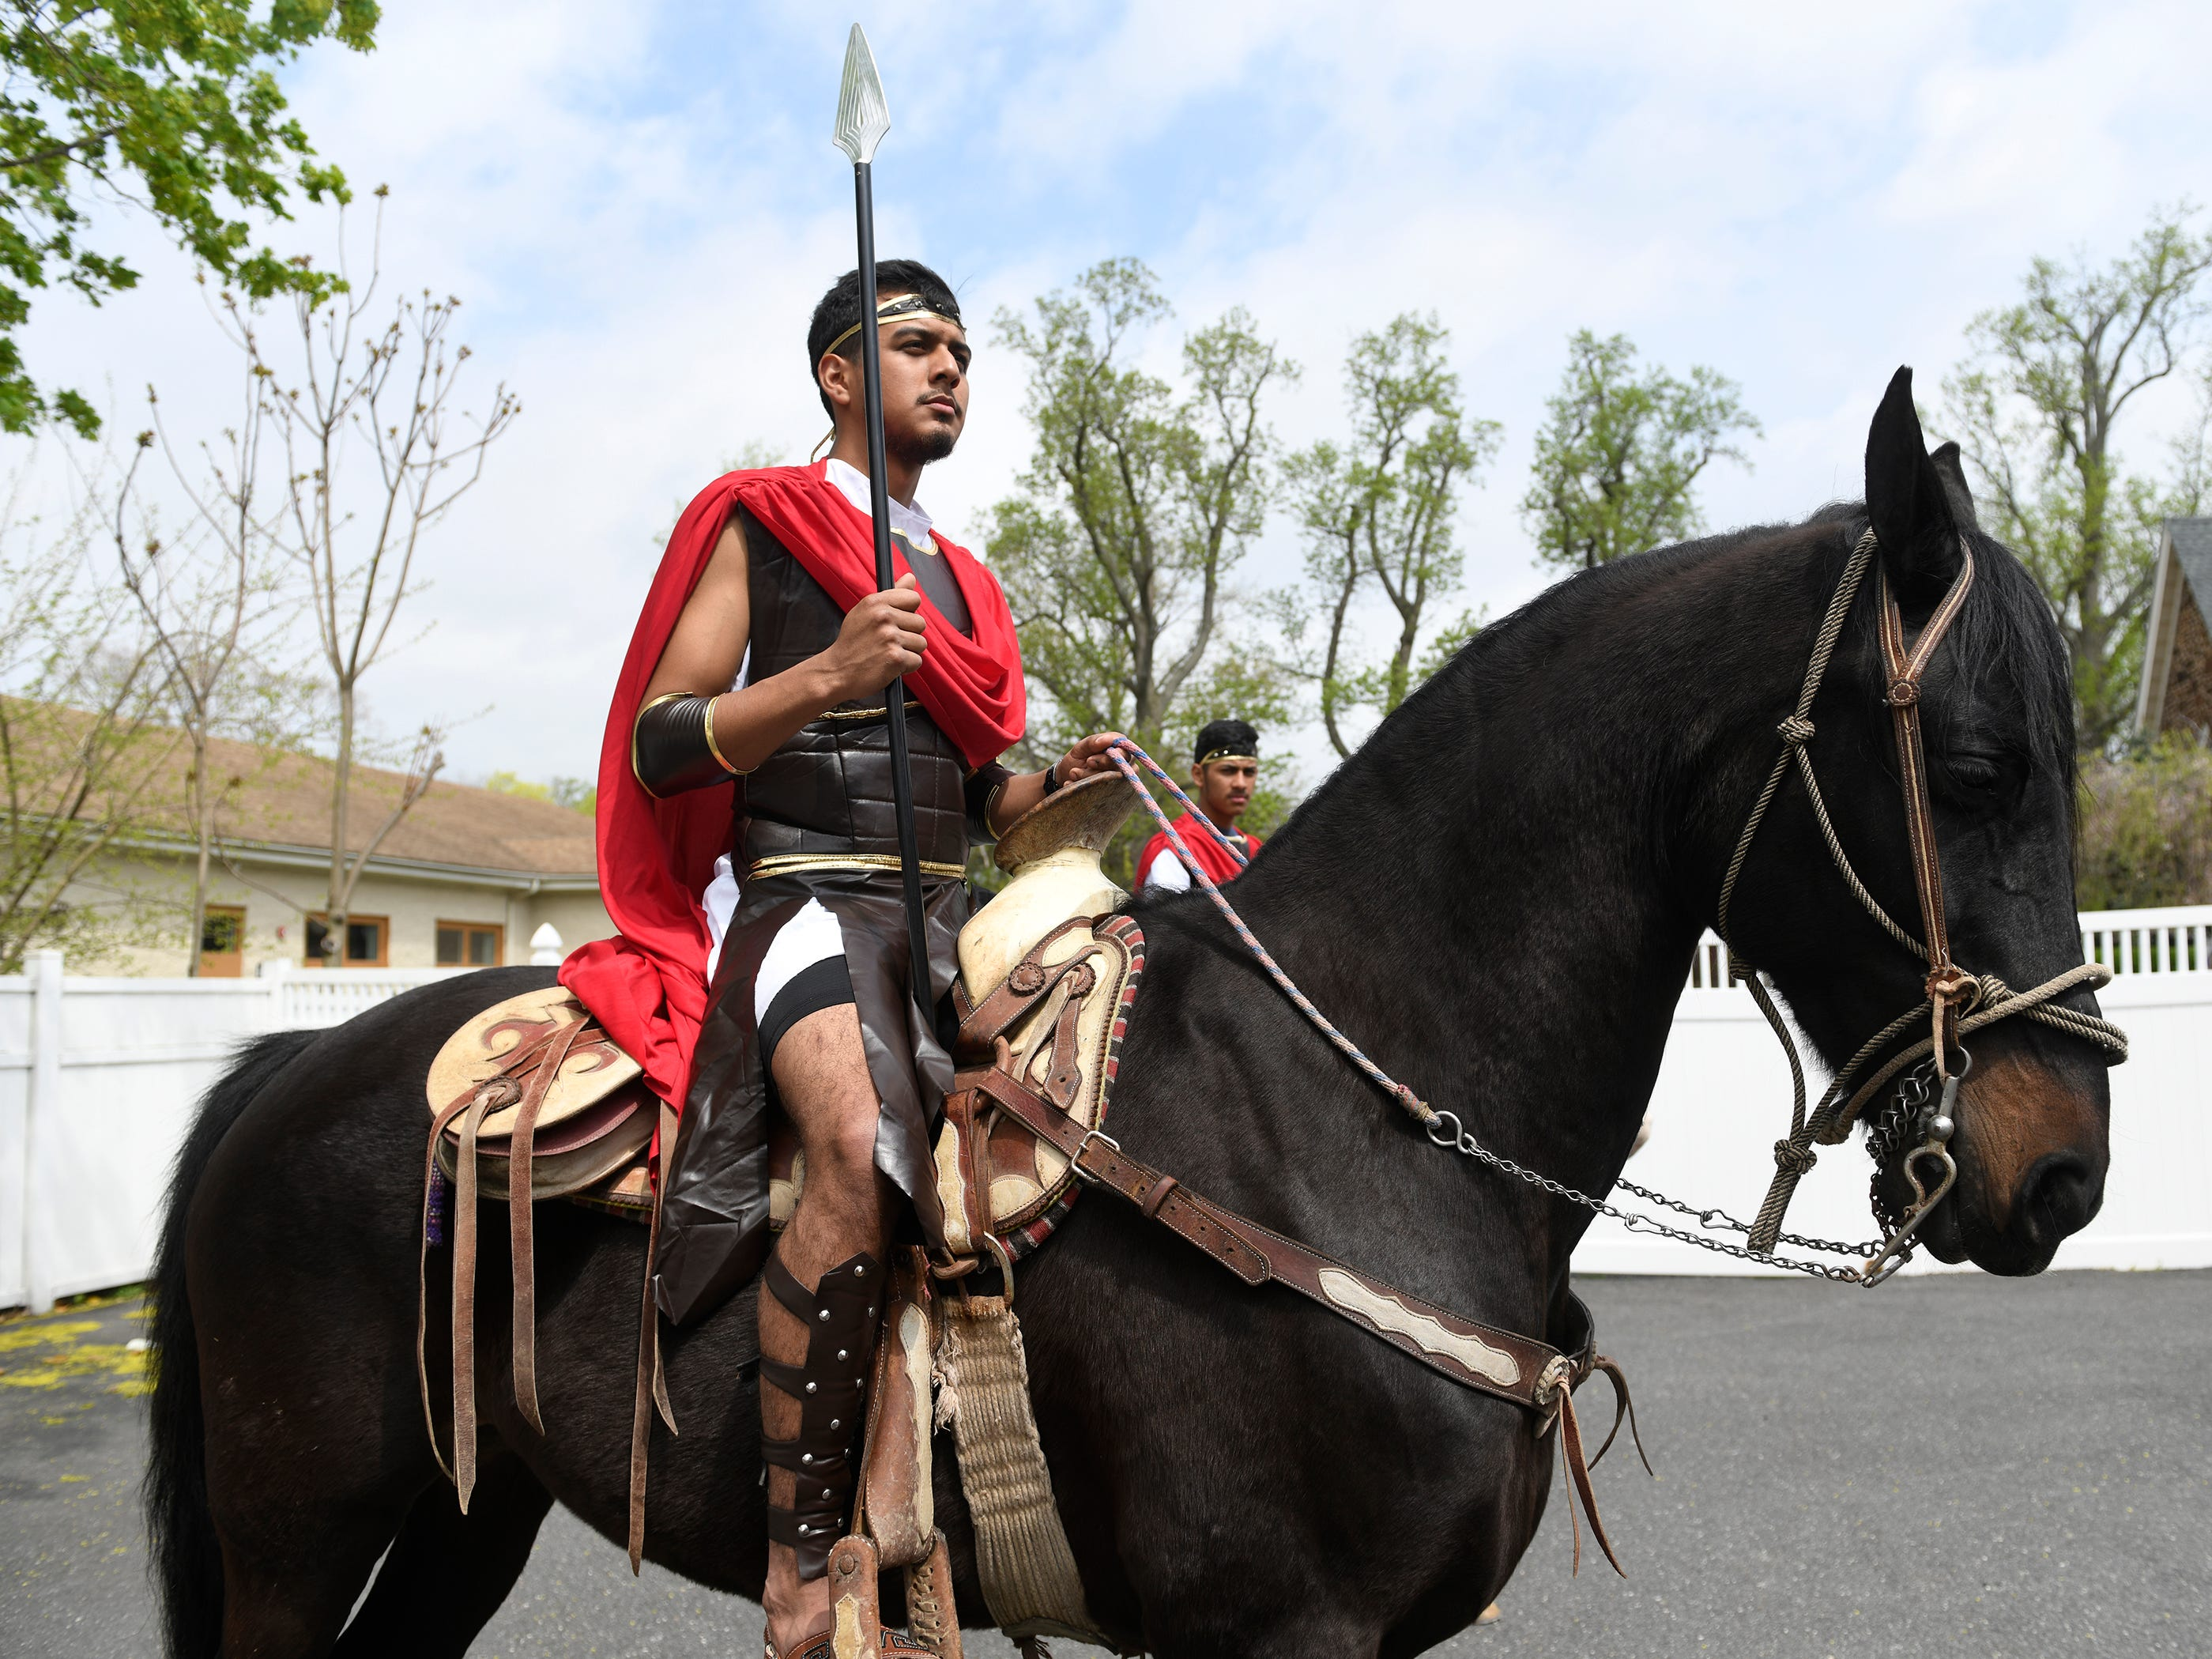 Tony Martinez rides a horse during the Good Friday procession, hosted by Divine Mercy Parish in Vineland. The performance of the Passion of Christ marched down Almond Street.